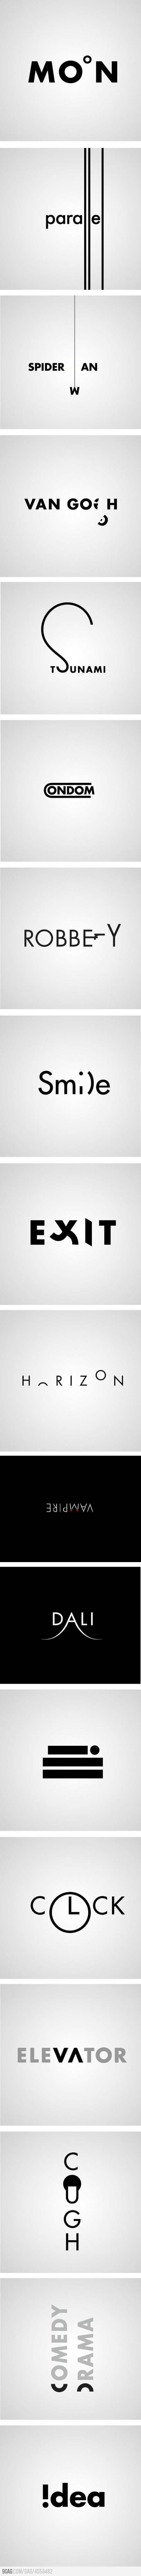 Logos; I love a smart logo, but I also like simple logos. I think that these are examples of good logos that just used simple type treatments to achieve a great result.